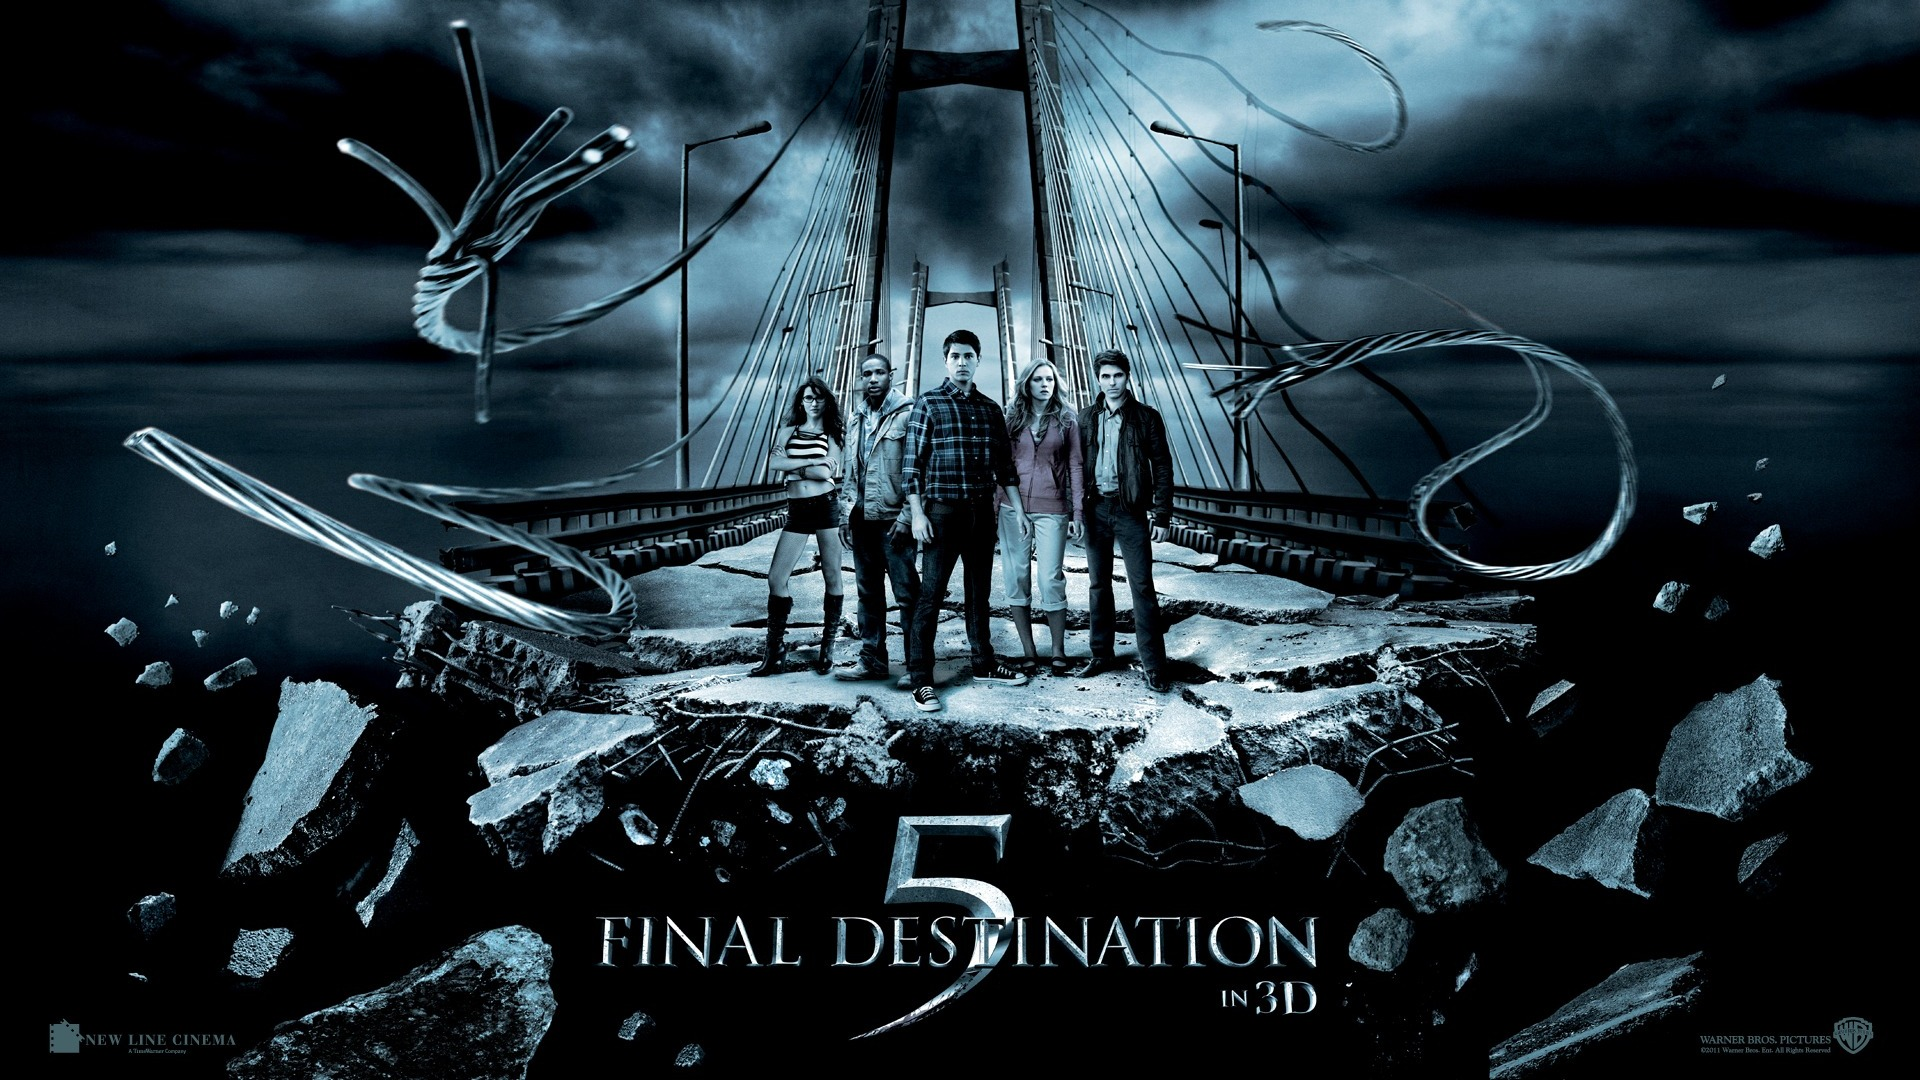 final destination 5 mp4 movie in hindi